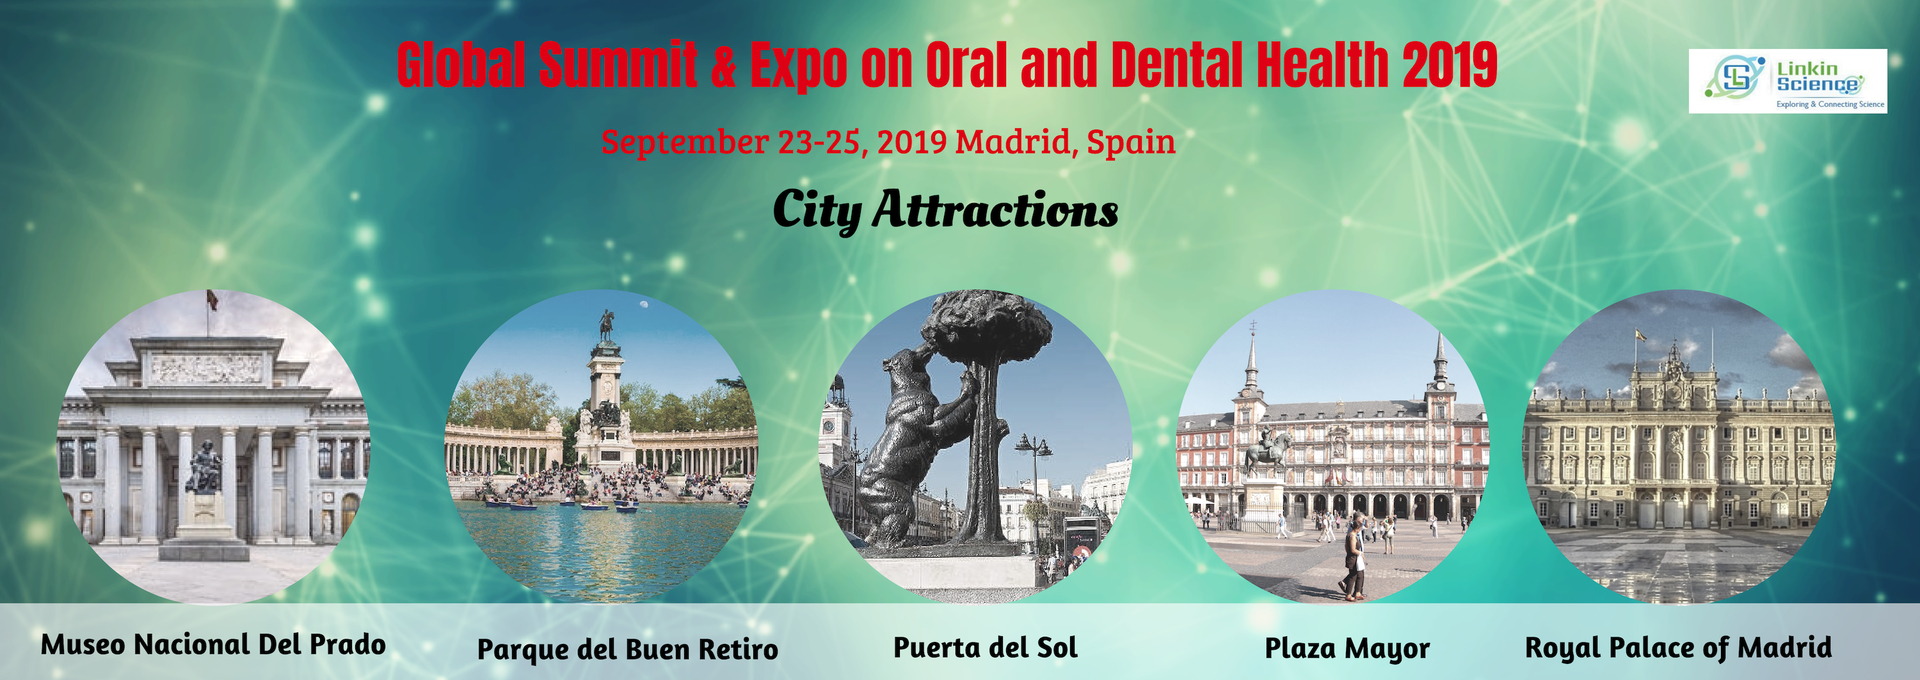 dental forum madrid